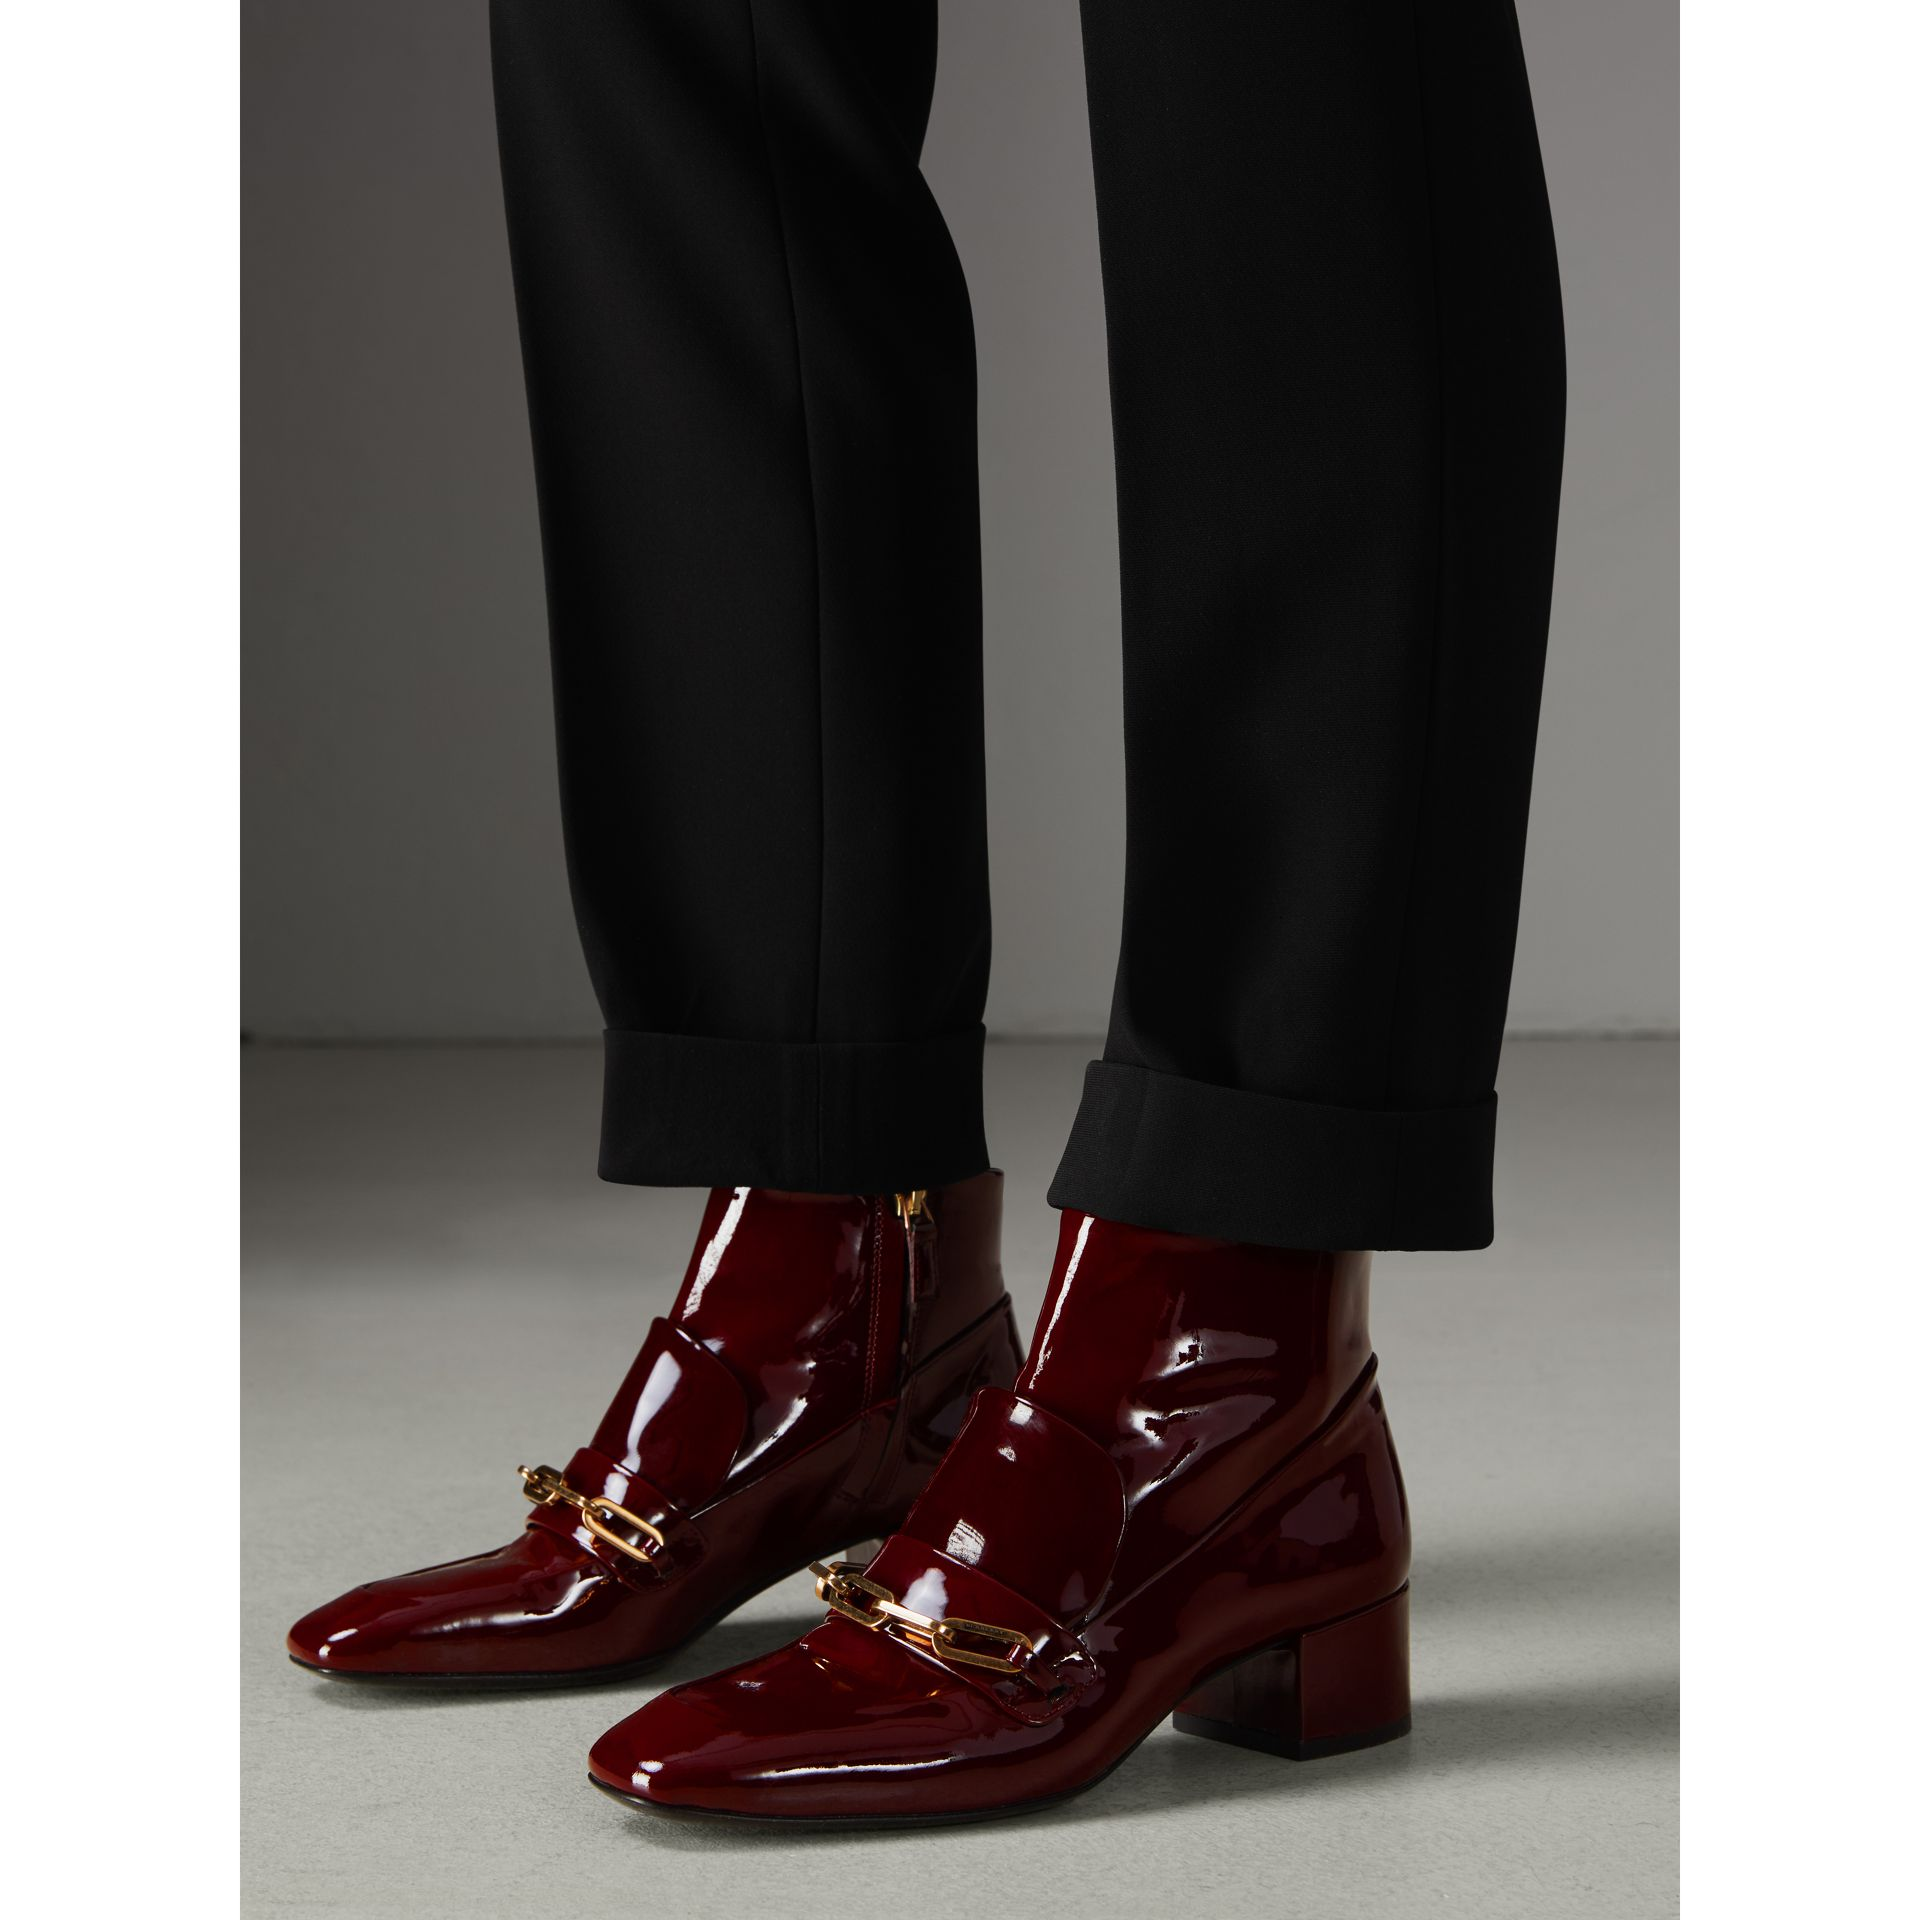 Link Detail Patent Leather Ankle Boots in Burgundy Red - Women | Burberry Singapore - gallery image 2